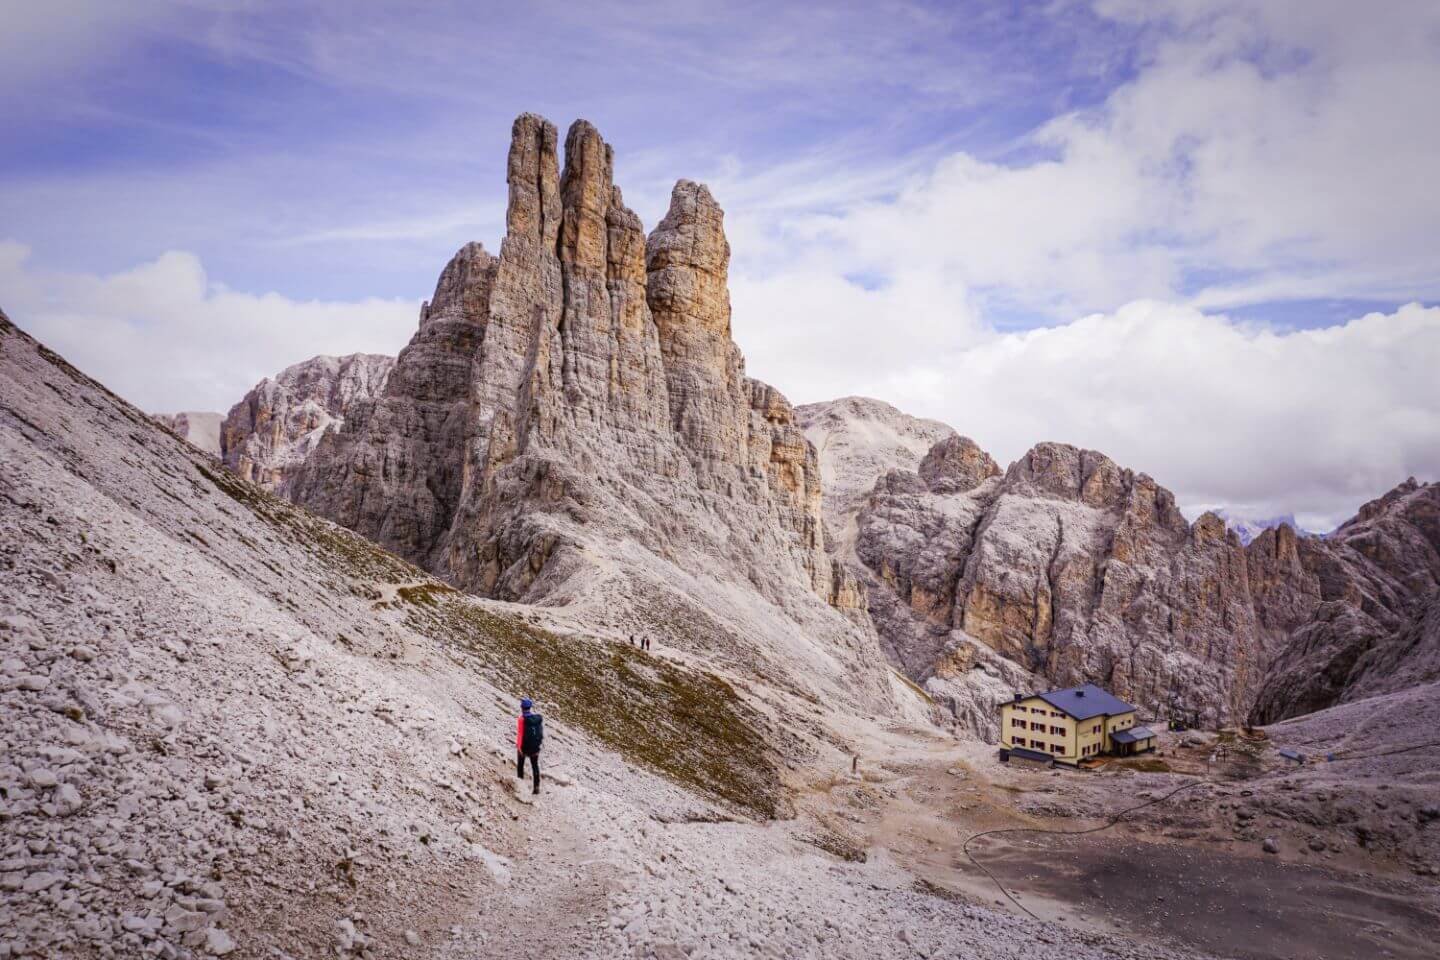 Vajolet Towers - Where to Stay in the Dolomites in Summer - Eggental